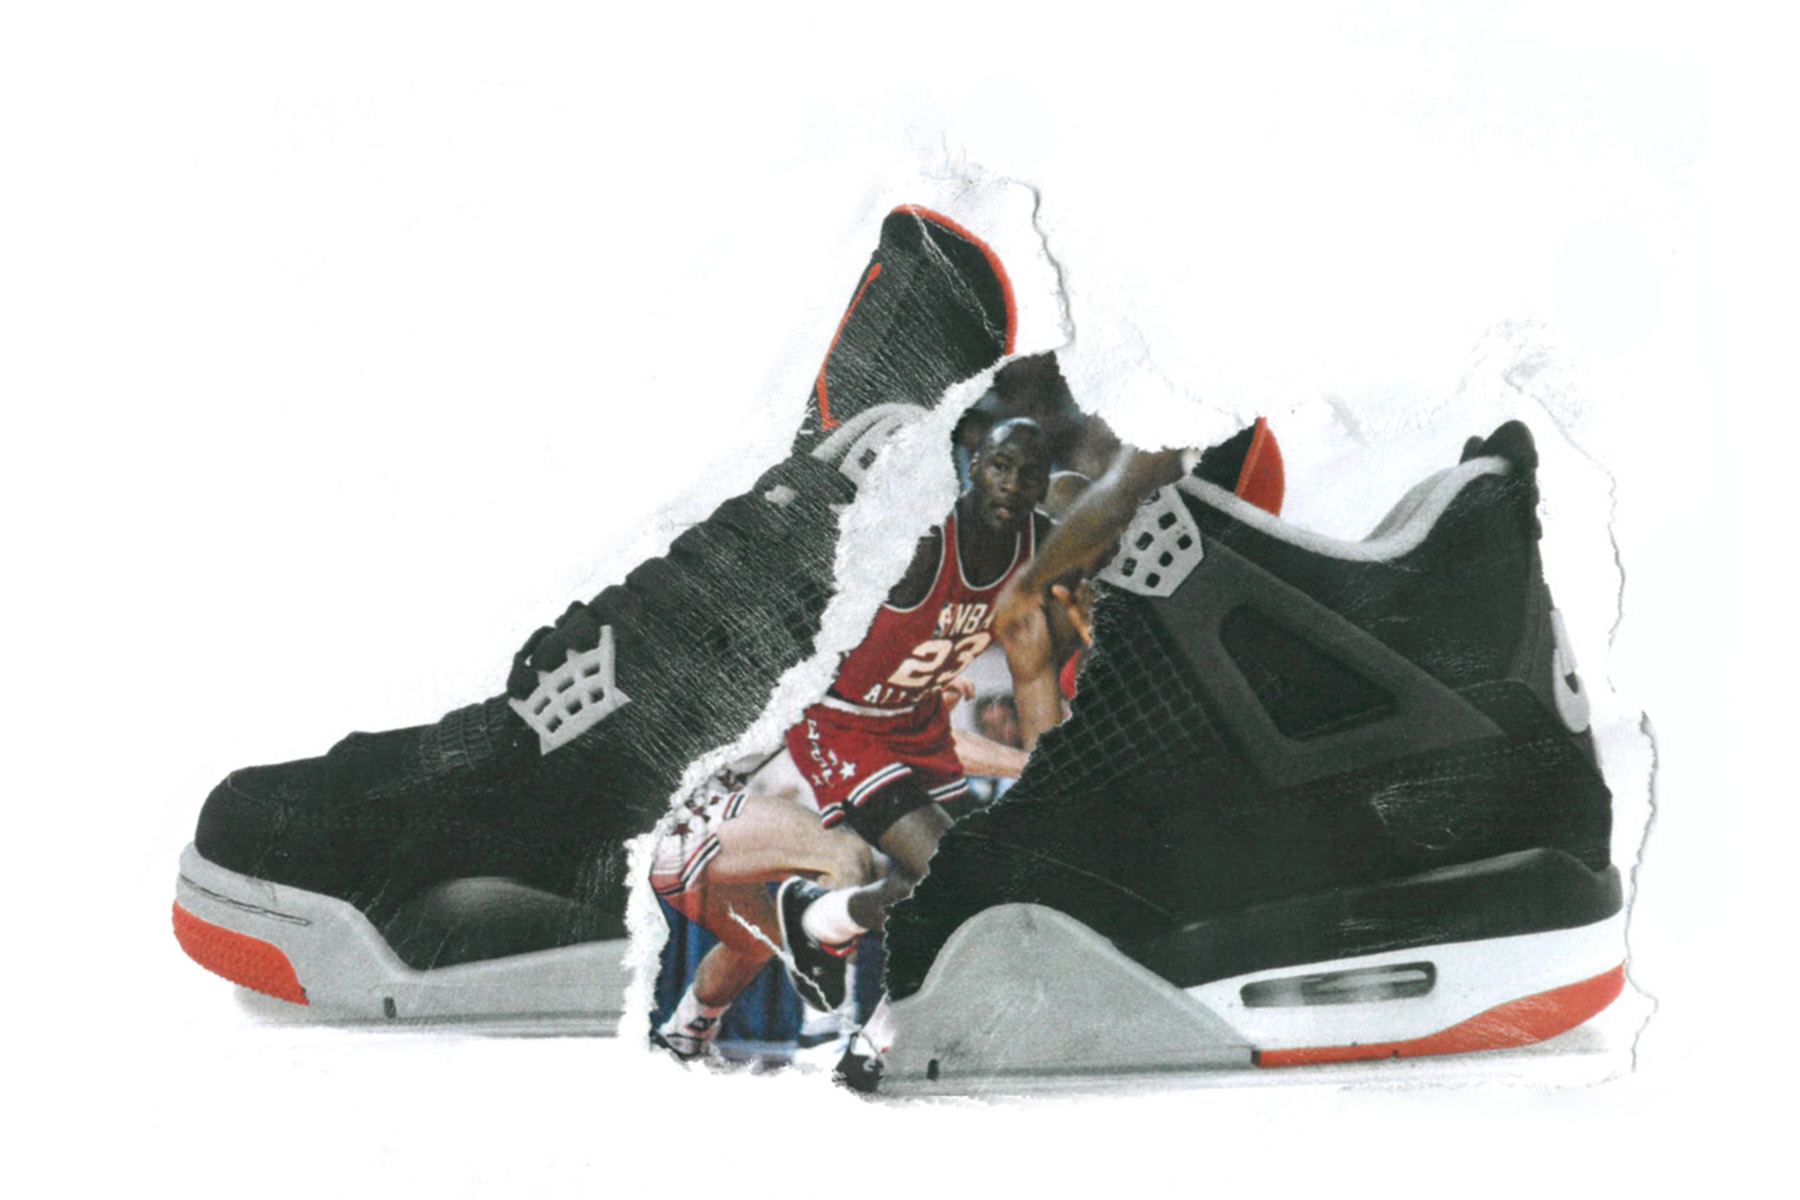 97fafa4260 To celebrate the 30th anniversary of the Air Jordan IV, the icon returns in  an OG colourway first released in 1989. The timeless silhouette is crafted  to ...